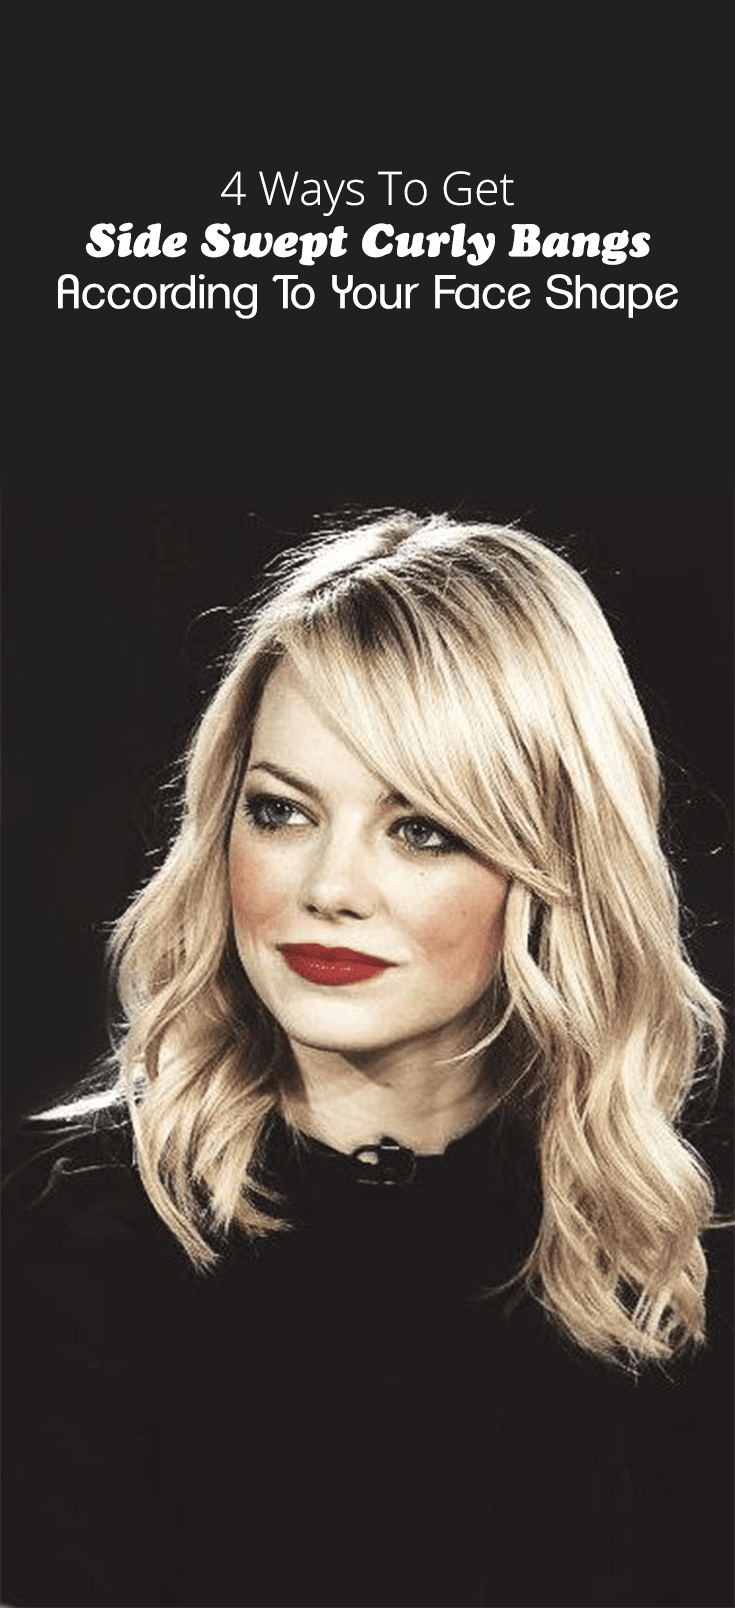 4 Ways To Get Side Swept Curly Bangs According To Your Face Shape